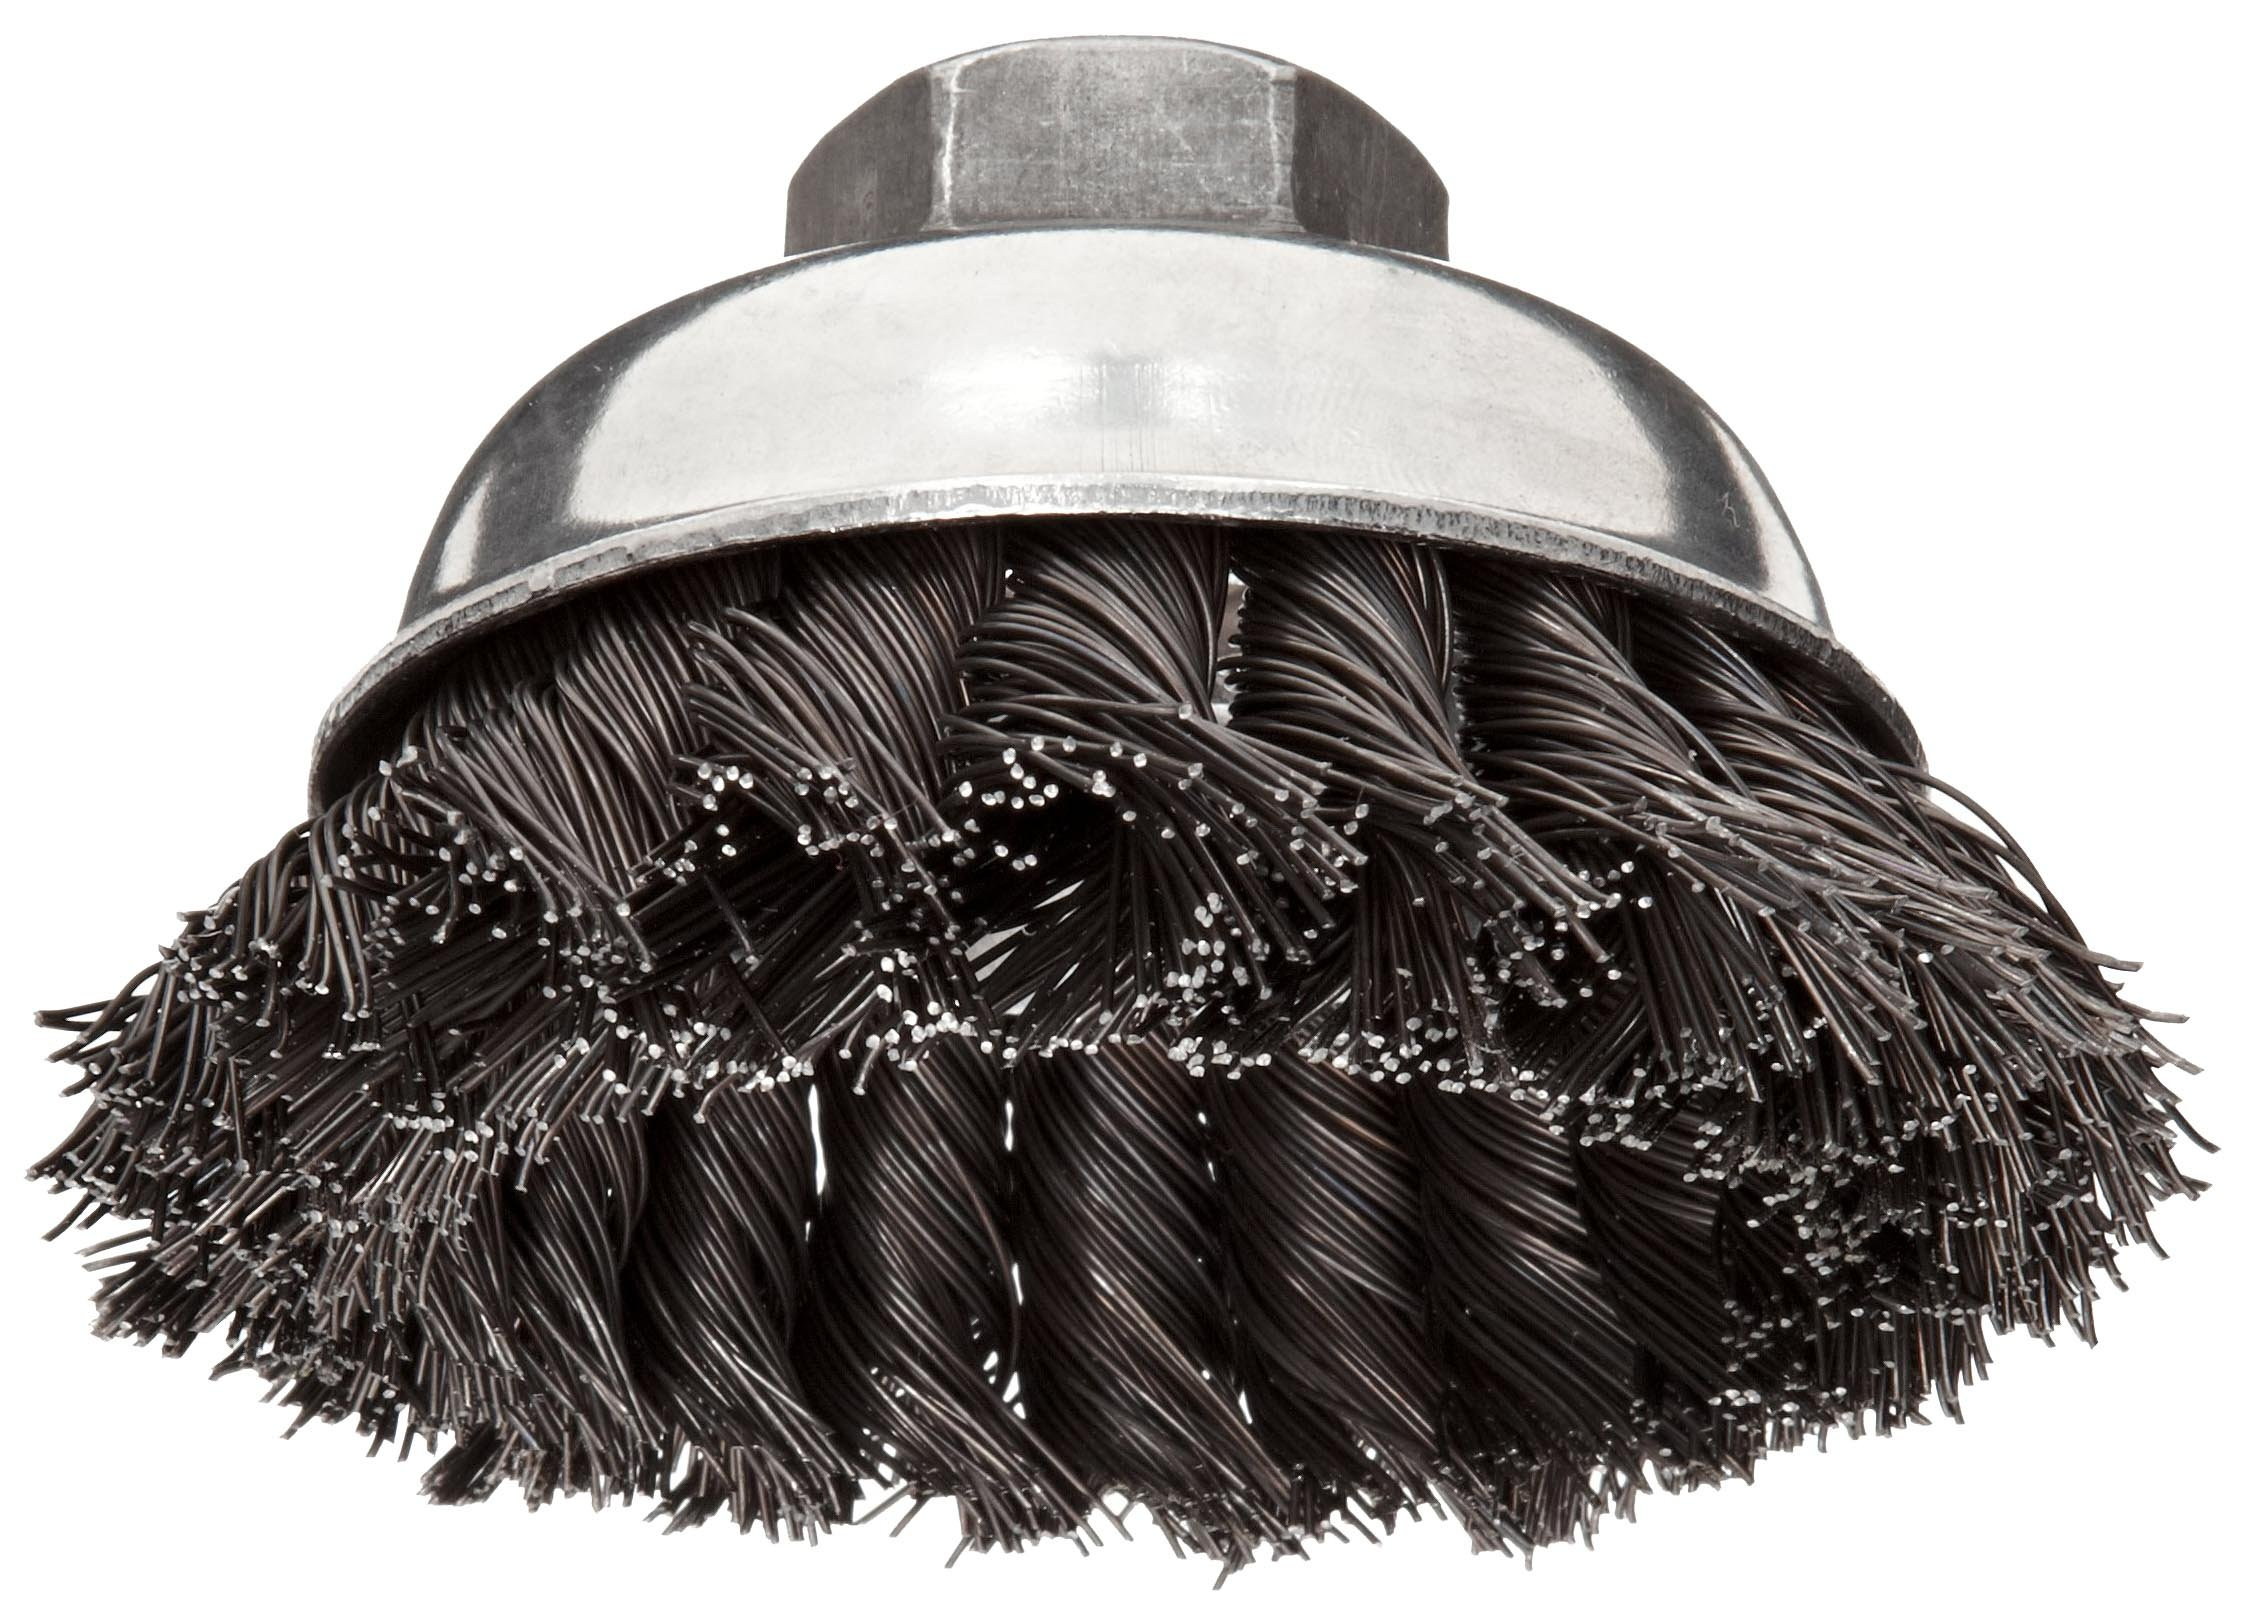 Weiler Vortex Pro Wire Cup Brush, Threaded Hole, Carbon Steel, Partial Twist Knotted, 3-1/2'' Diameter, 0.02'' Wire Diameter, 5/8''-11 Arbor, 13000 rpm (Pack of 1)